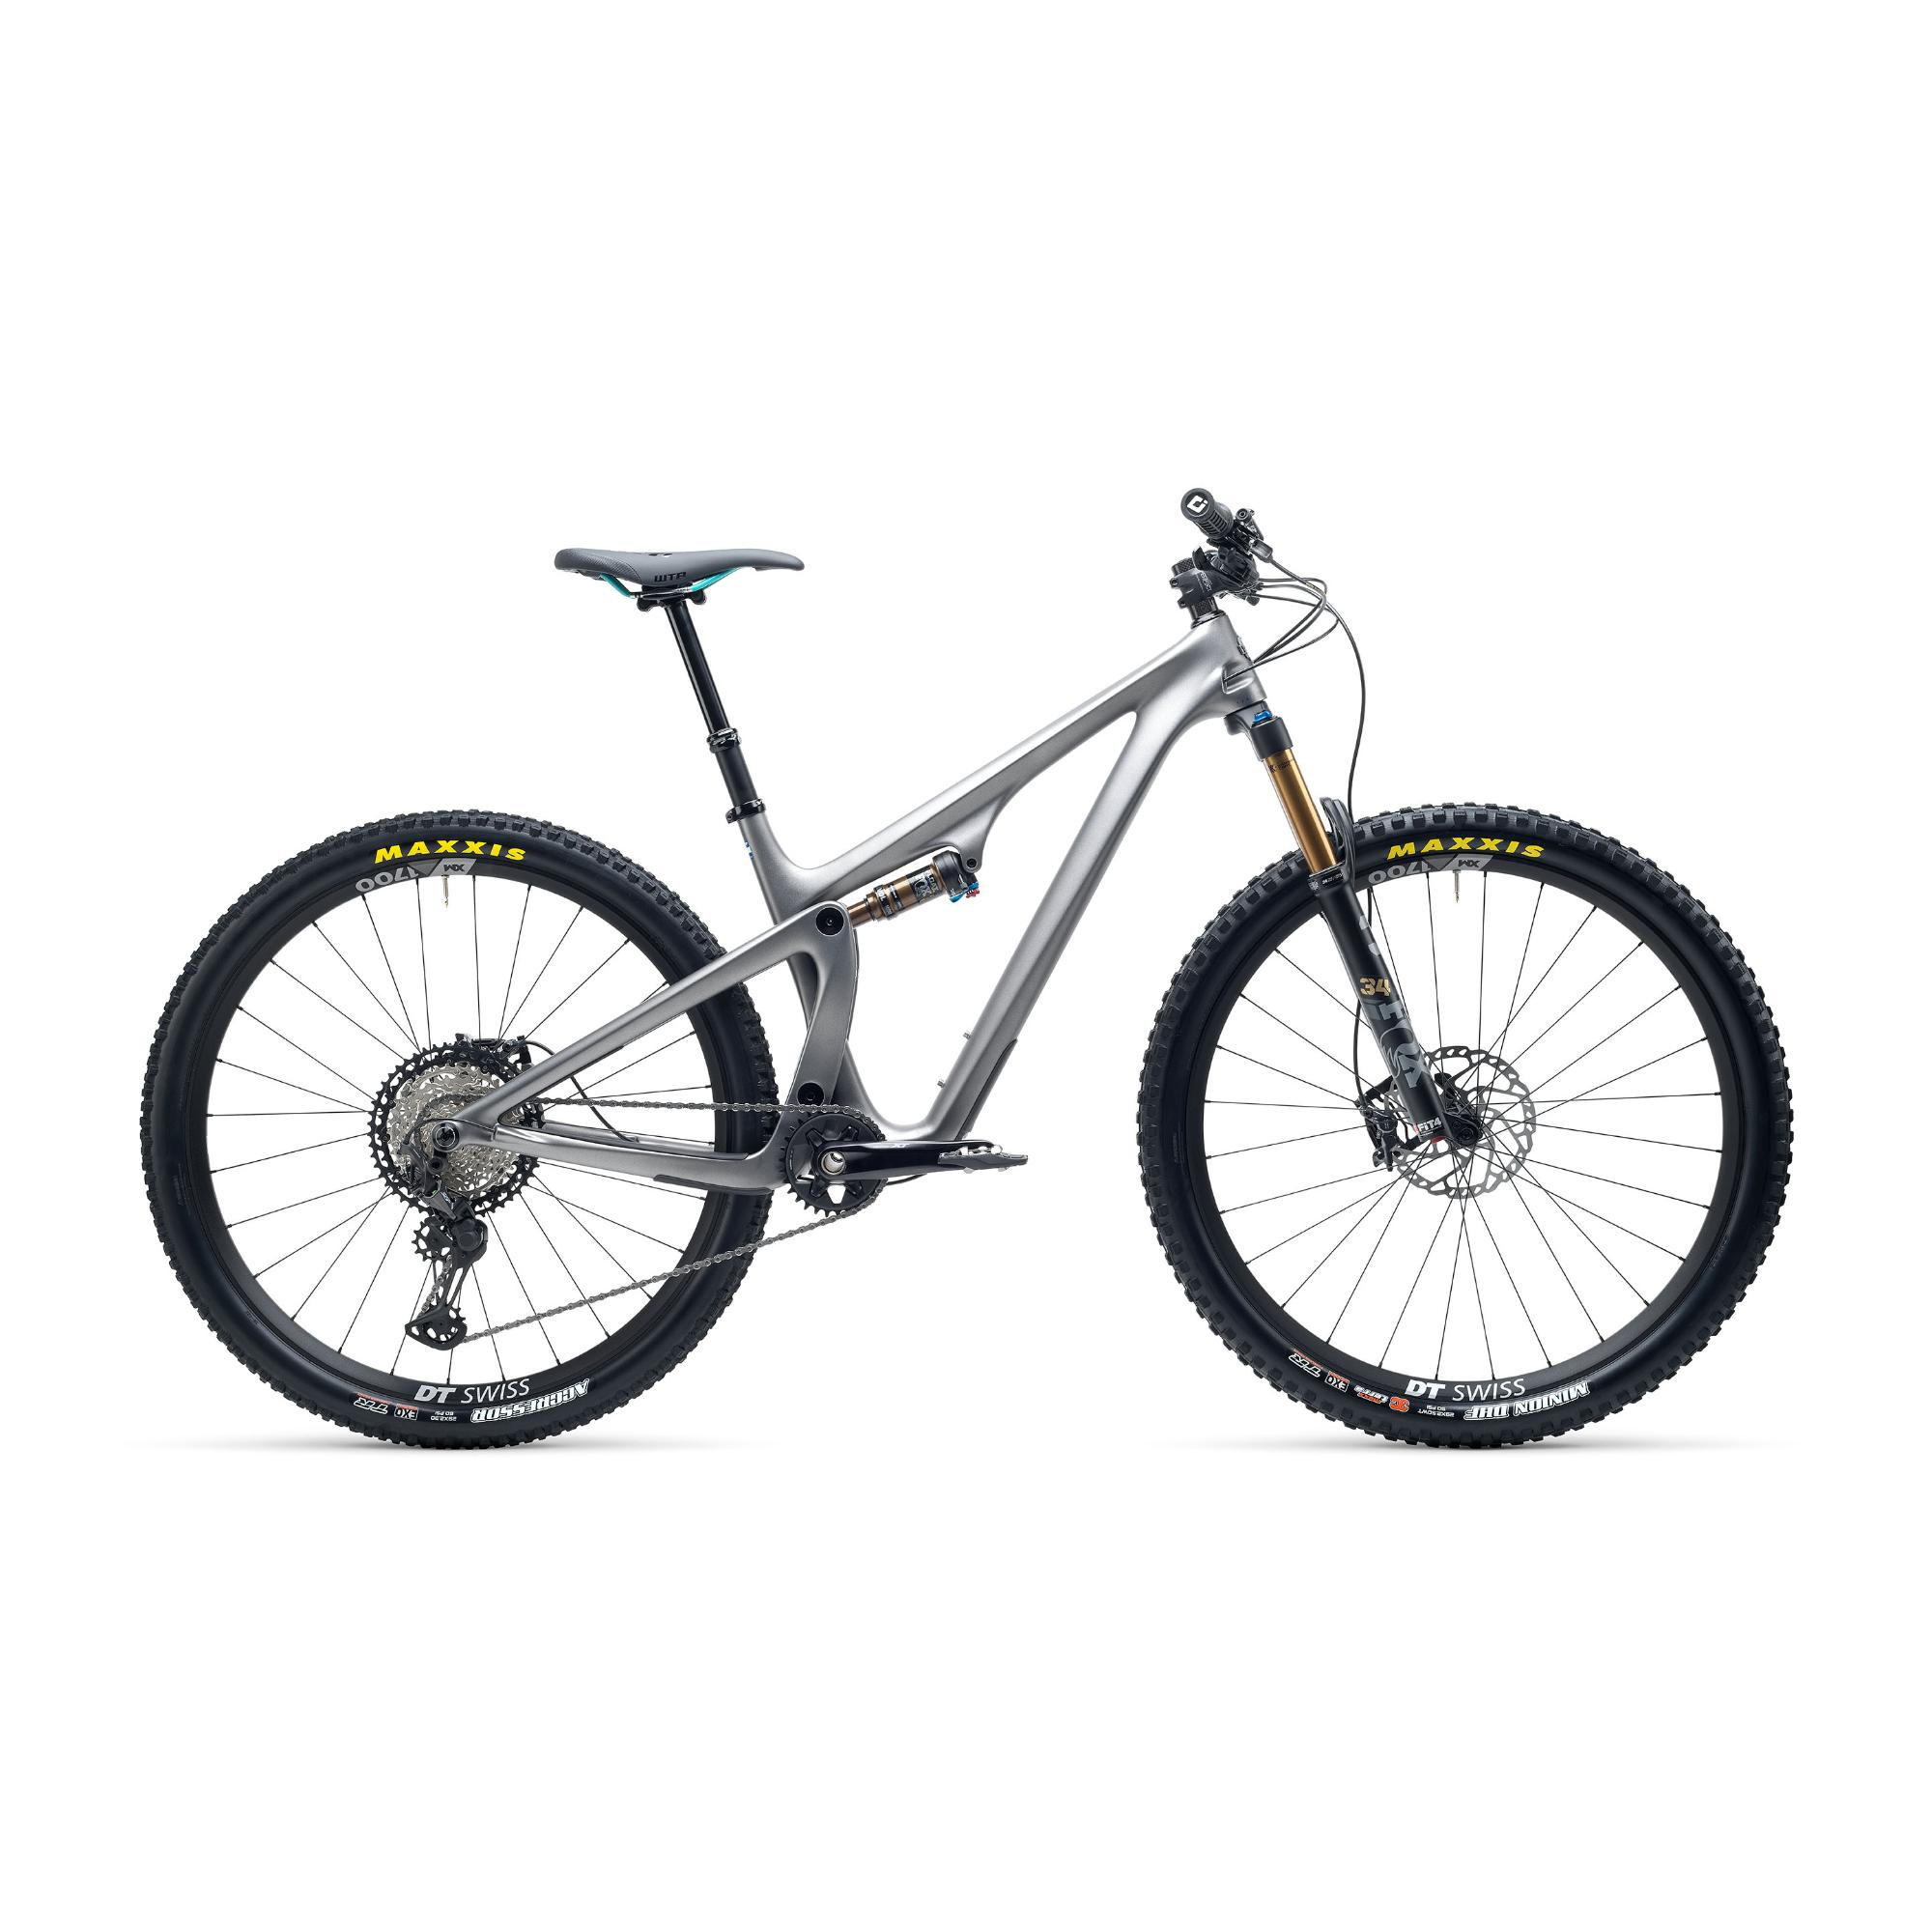 Yeti SB115 T-Series T1 29er Mountain Bike 2021 Anthracite